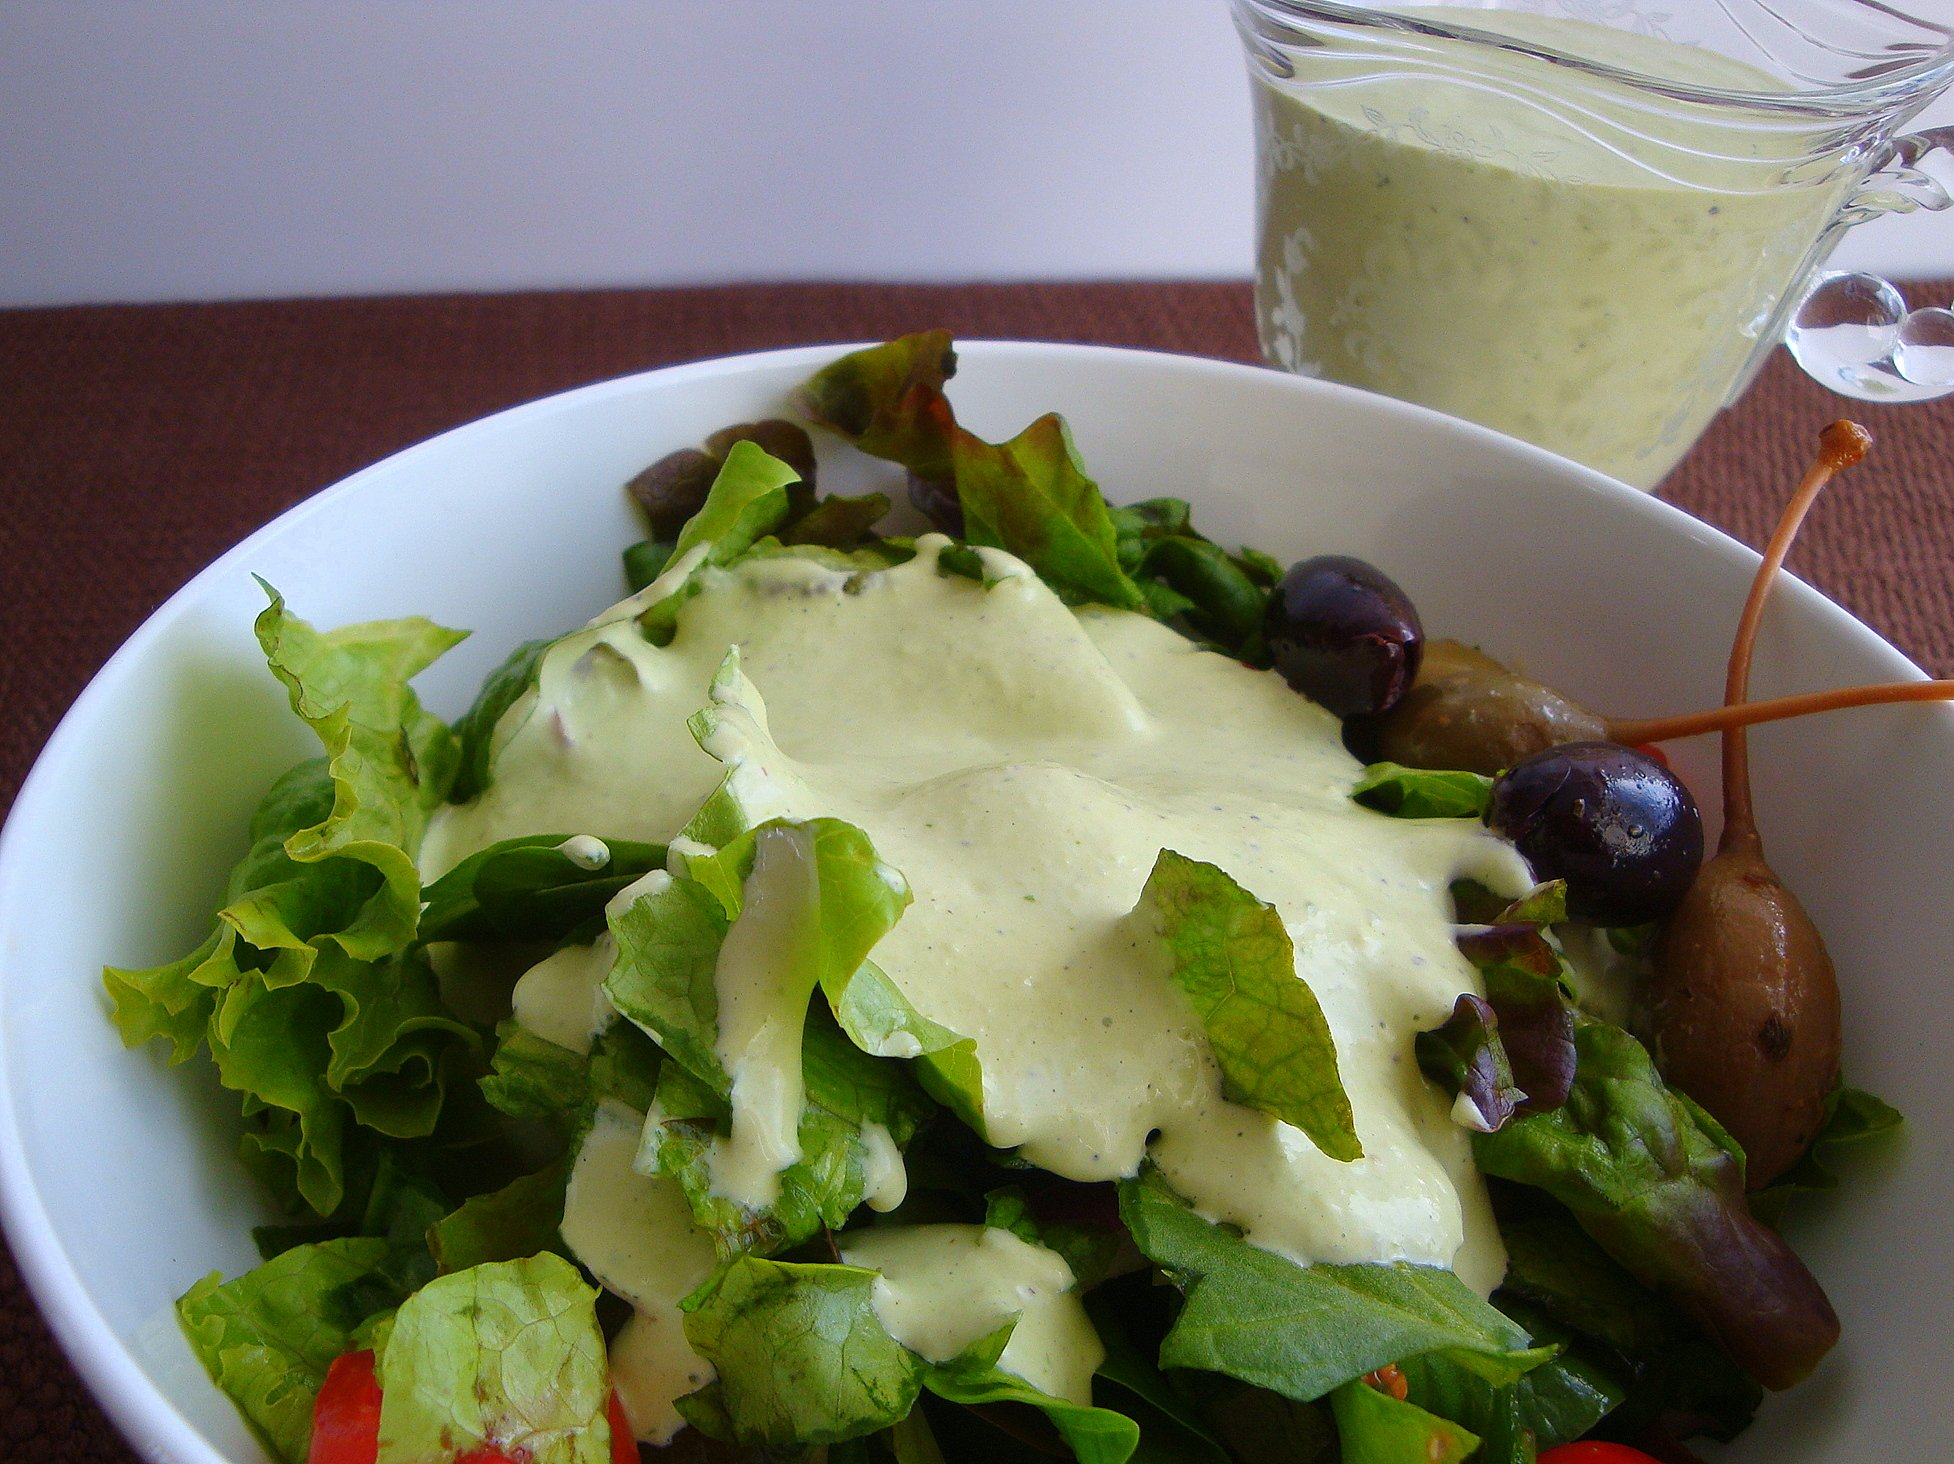 goddess dressing green goddess dressing green goddess dressing recipe ...